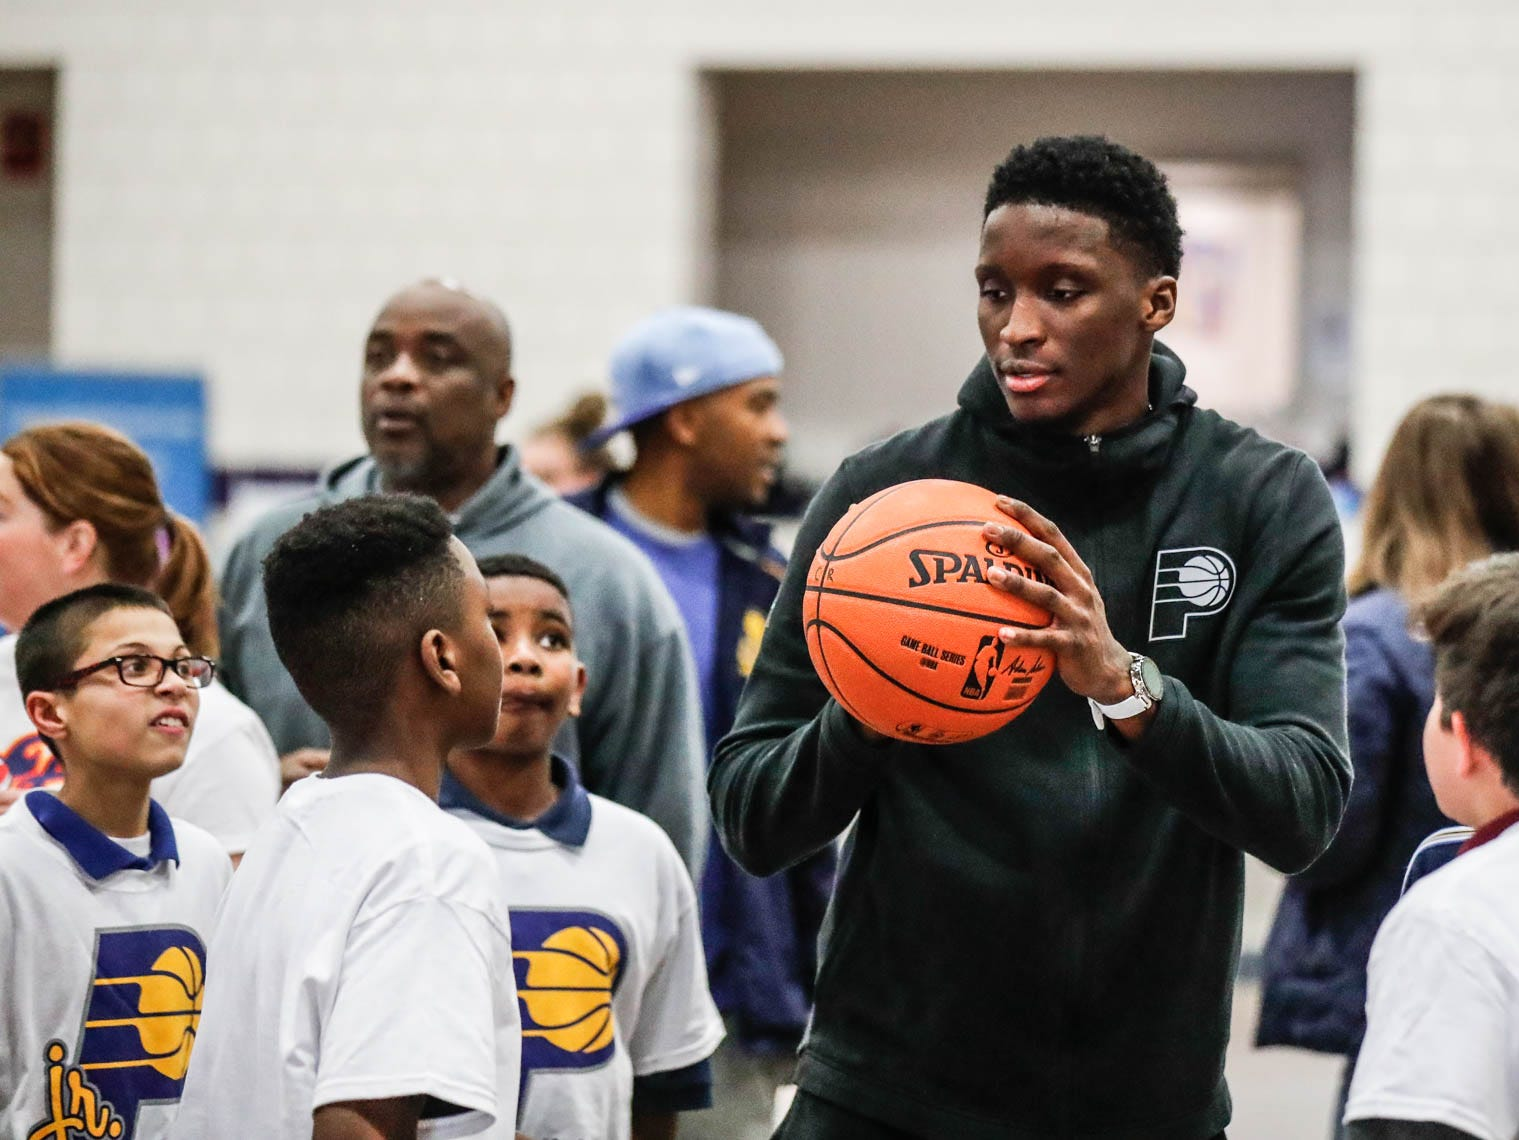 Indiana Pacers guard Victor Oladipo helps children learn the game of basketball after surprising then with an appearance during a Jr. Pacers Clinic at Concord Neighborhood Center, on Monday, Jan. 14, 2019.